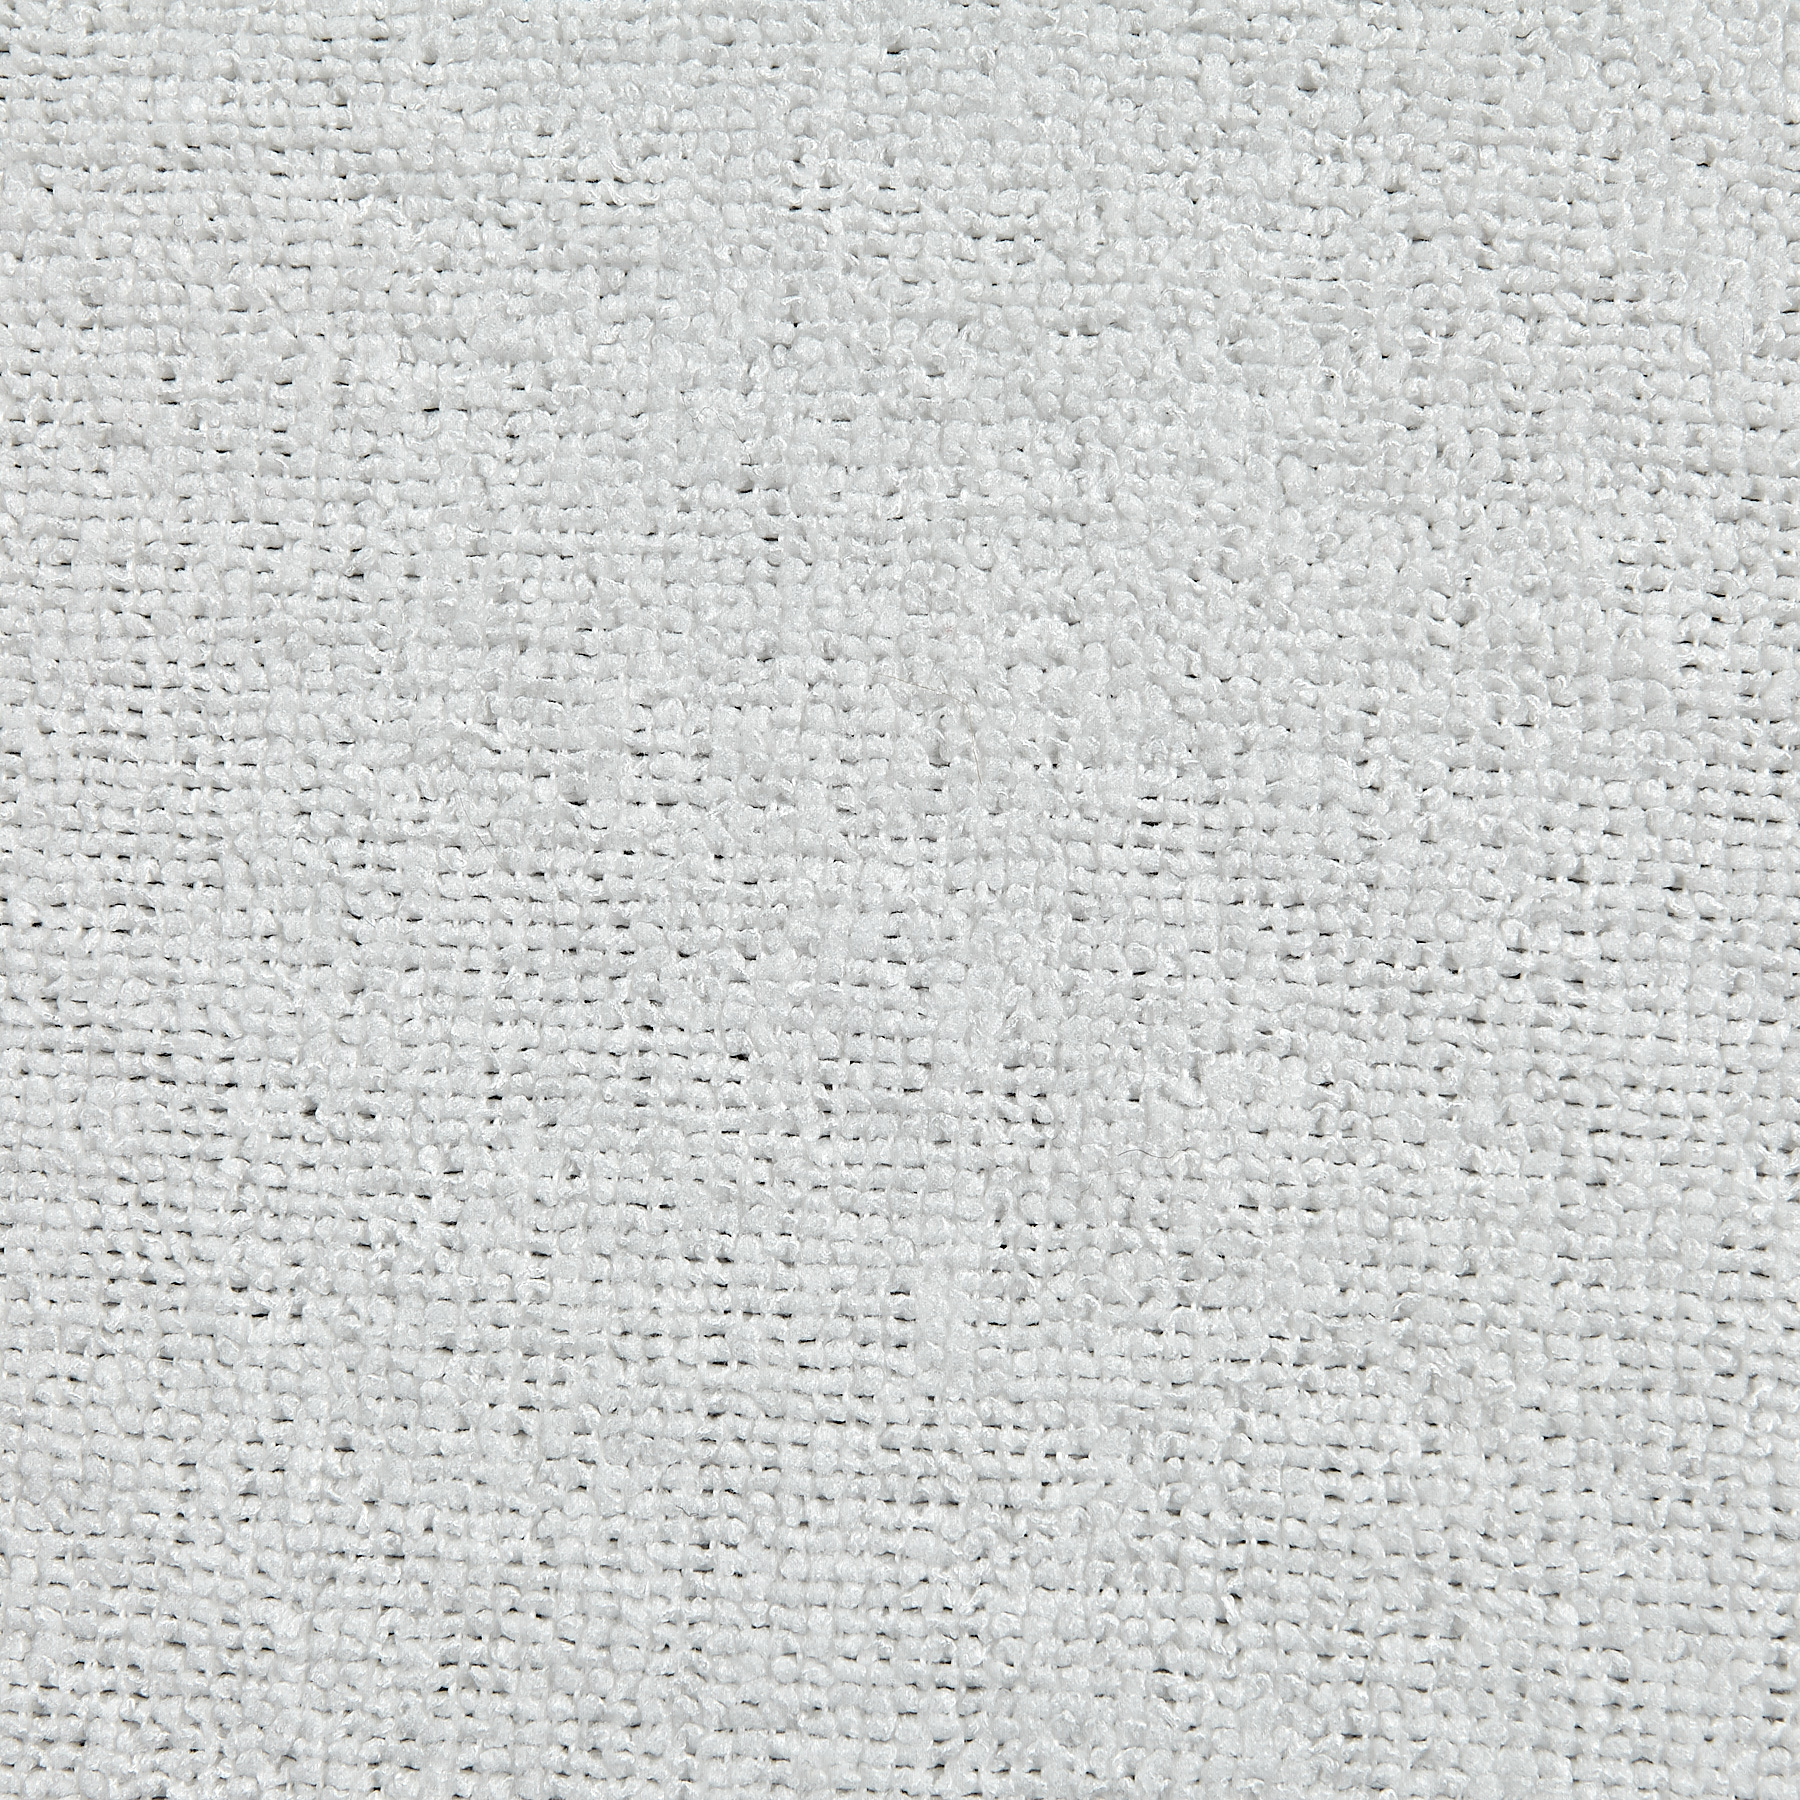 Image of Microfiber Terry Soaker White Fabric